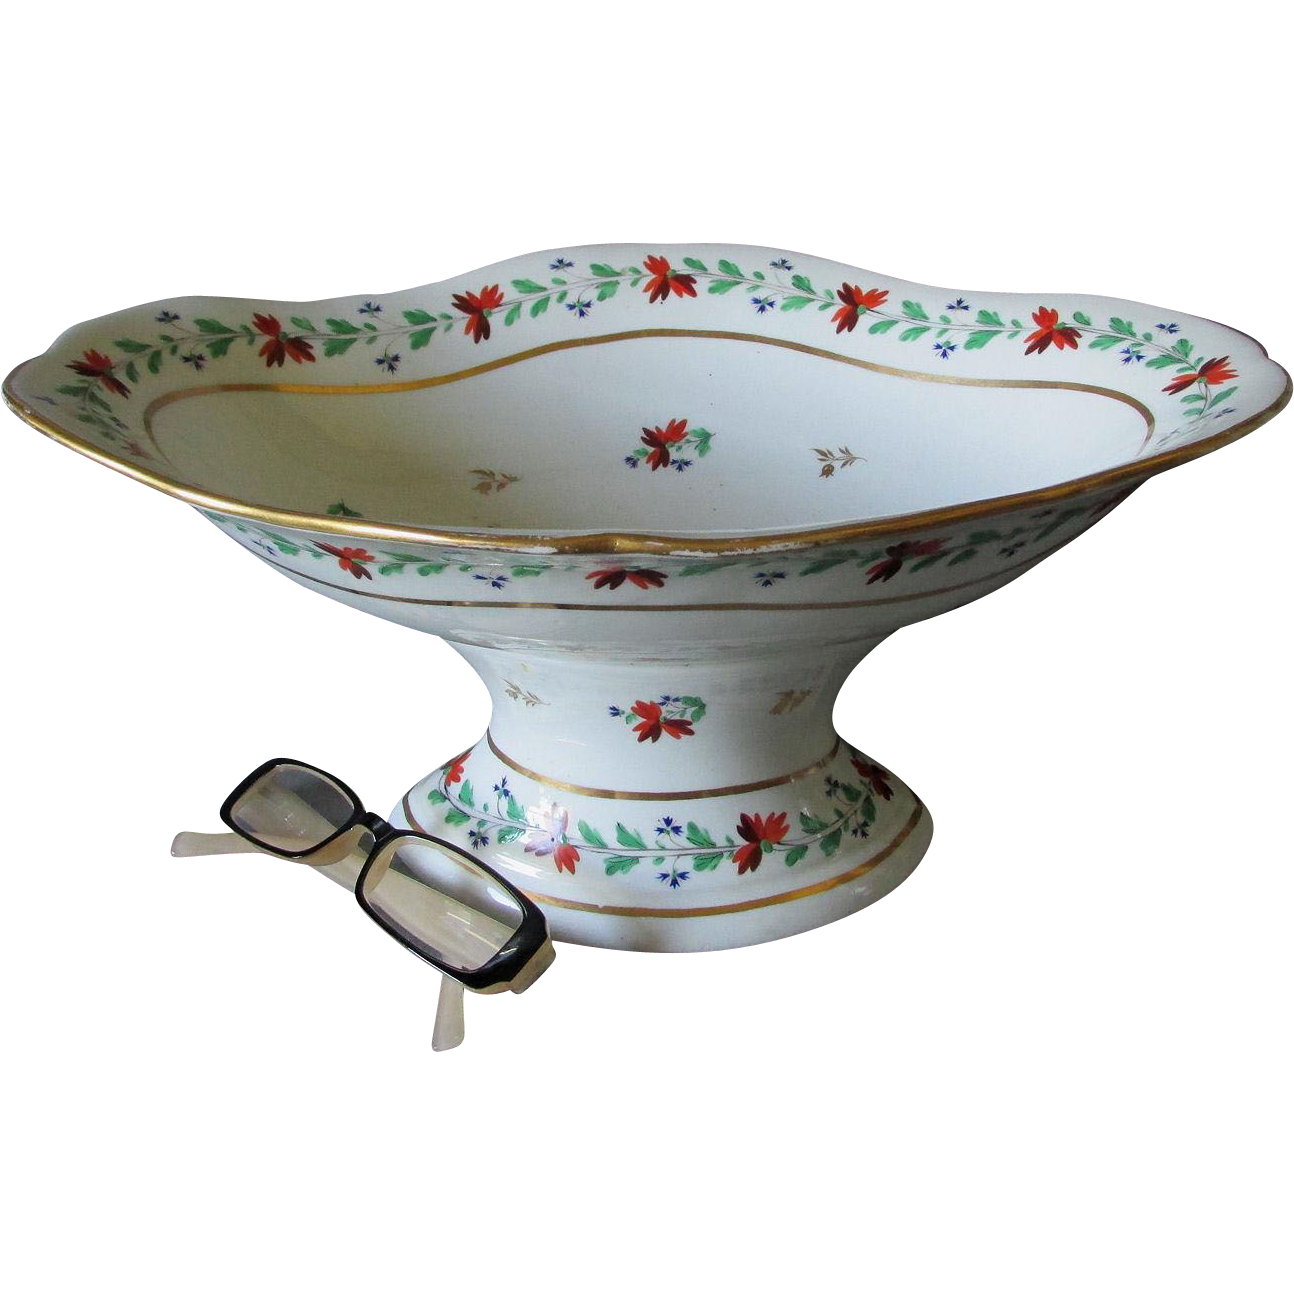 c1820s English Derby Soft Paste Footed Bowl, Serving Dish